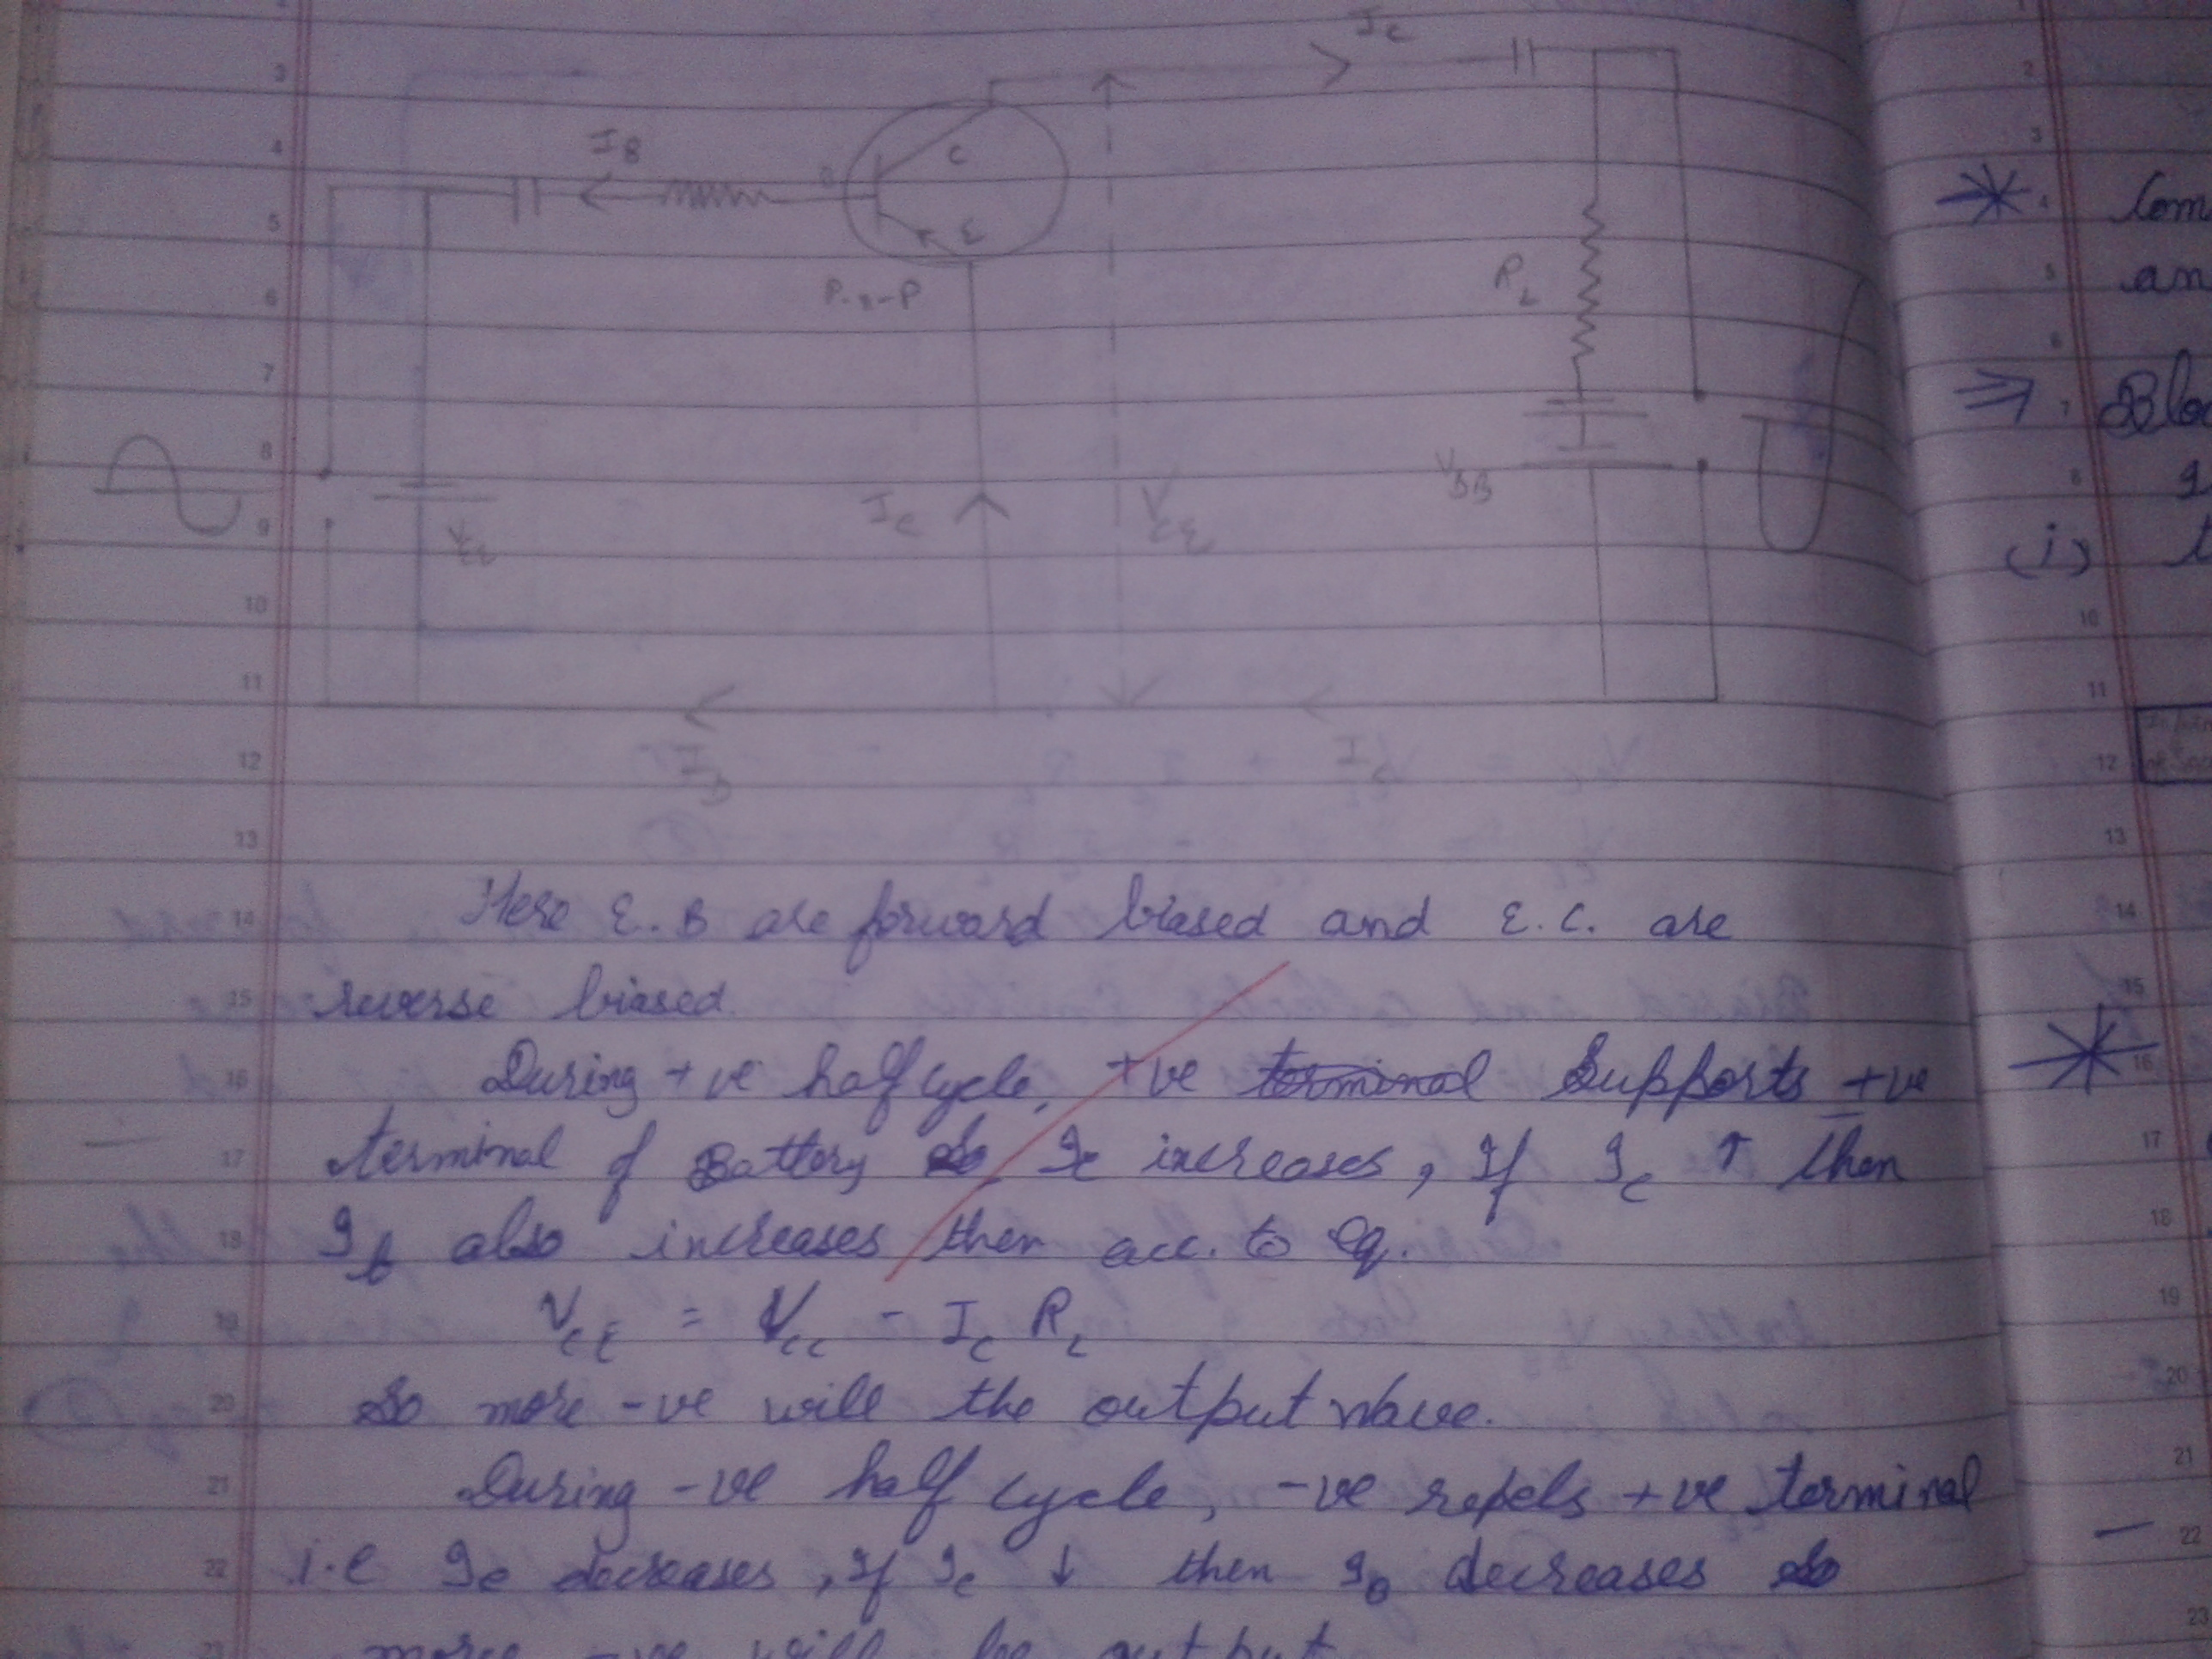 Explain Working Of A Pnp Transistor Along With Labelled Diagram This Is Explanation For